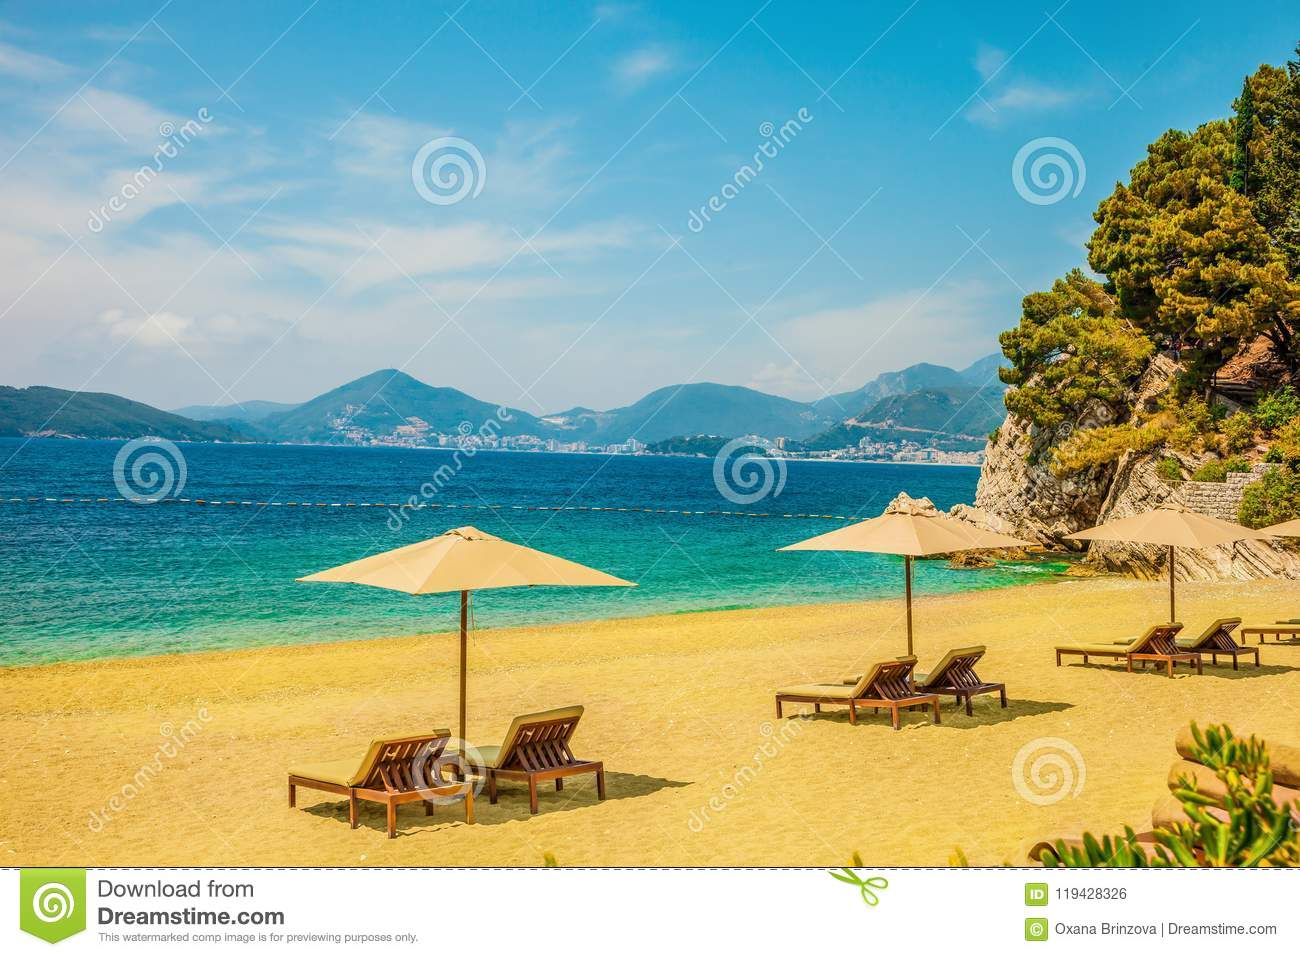 Yellow sandy beach with sun loungers on a Sunny day. Mountain peaks visible in the distance. Beautiful sea background.